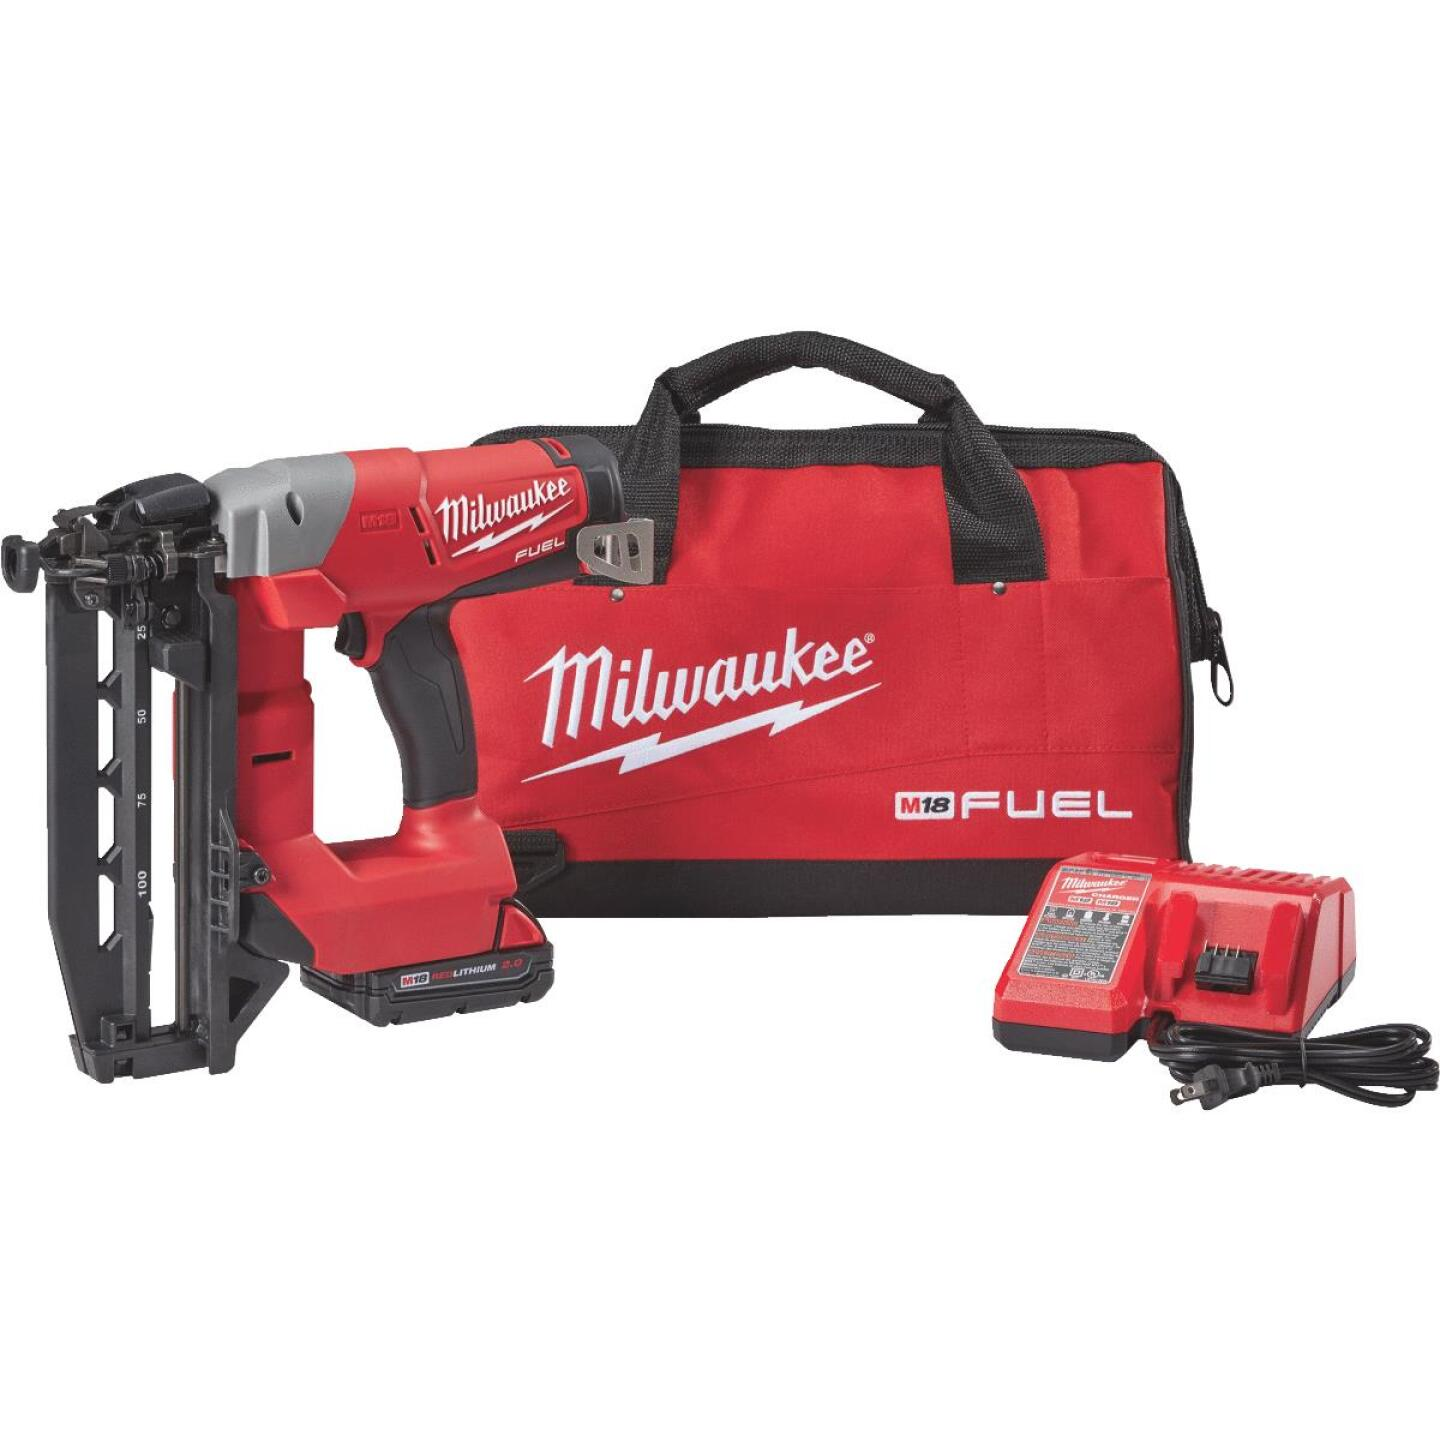 Milwaukee M18 FUEL 18-Volt Lithium-Ion Brushless 16-Gauge 2-1/2 In. Straight Cordless Finish Nailer Kit Image 1